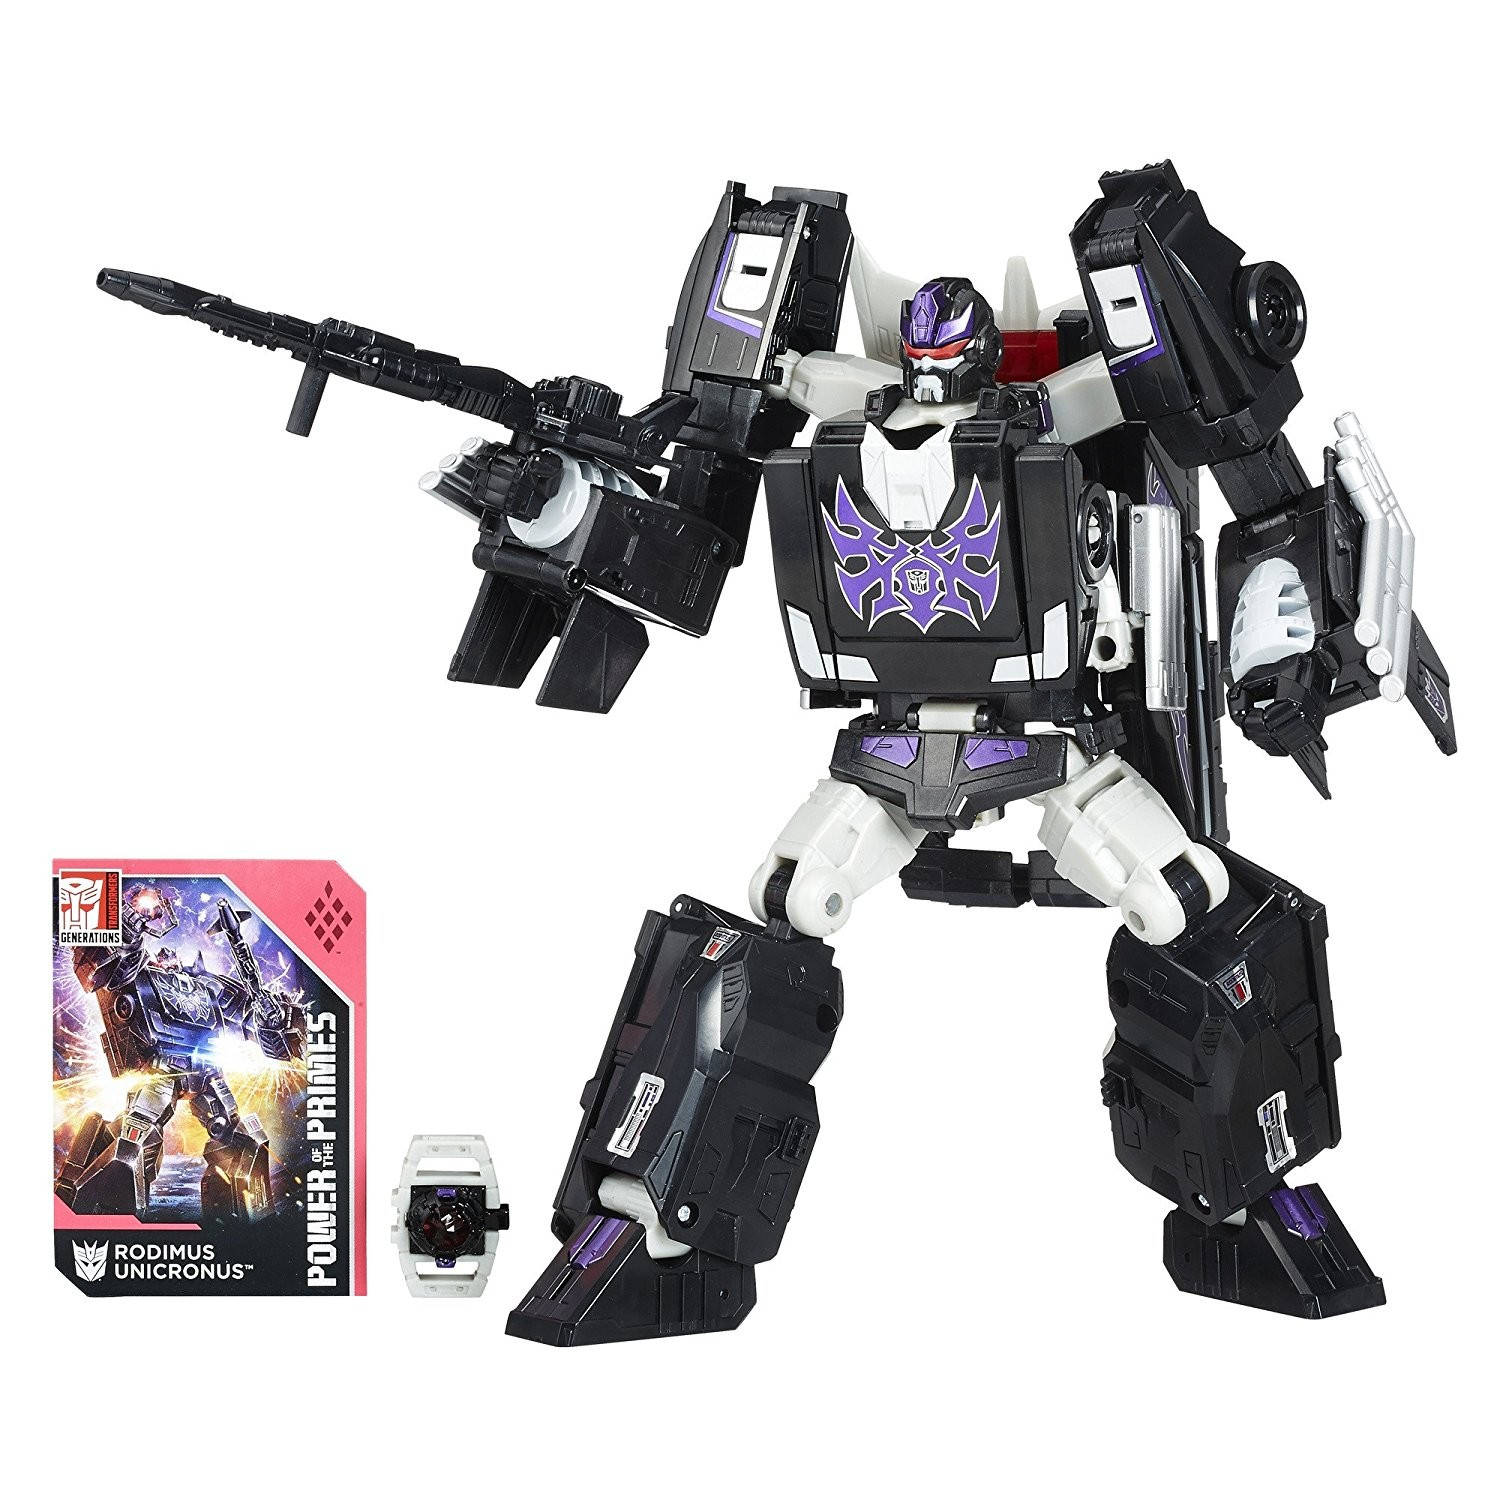 Full Content Of Transformers Power Of The Primes Wave 2